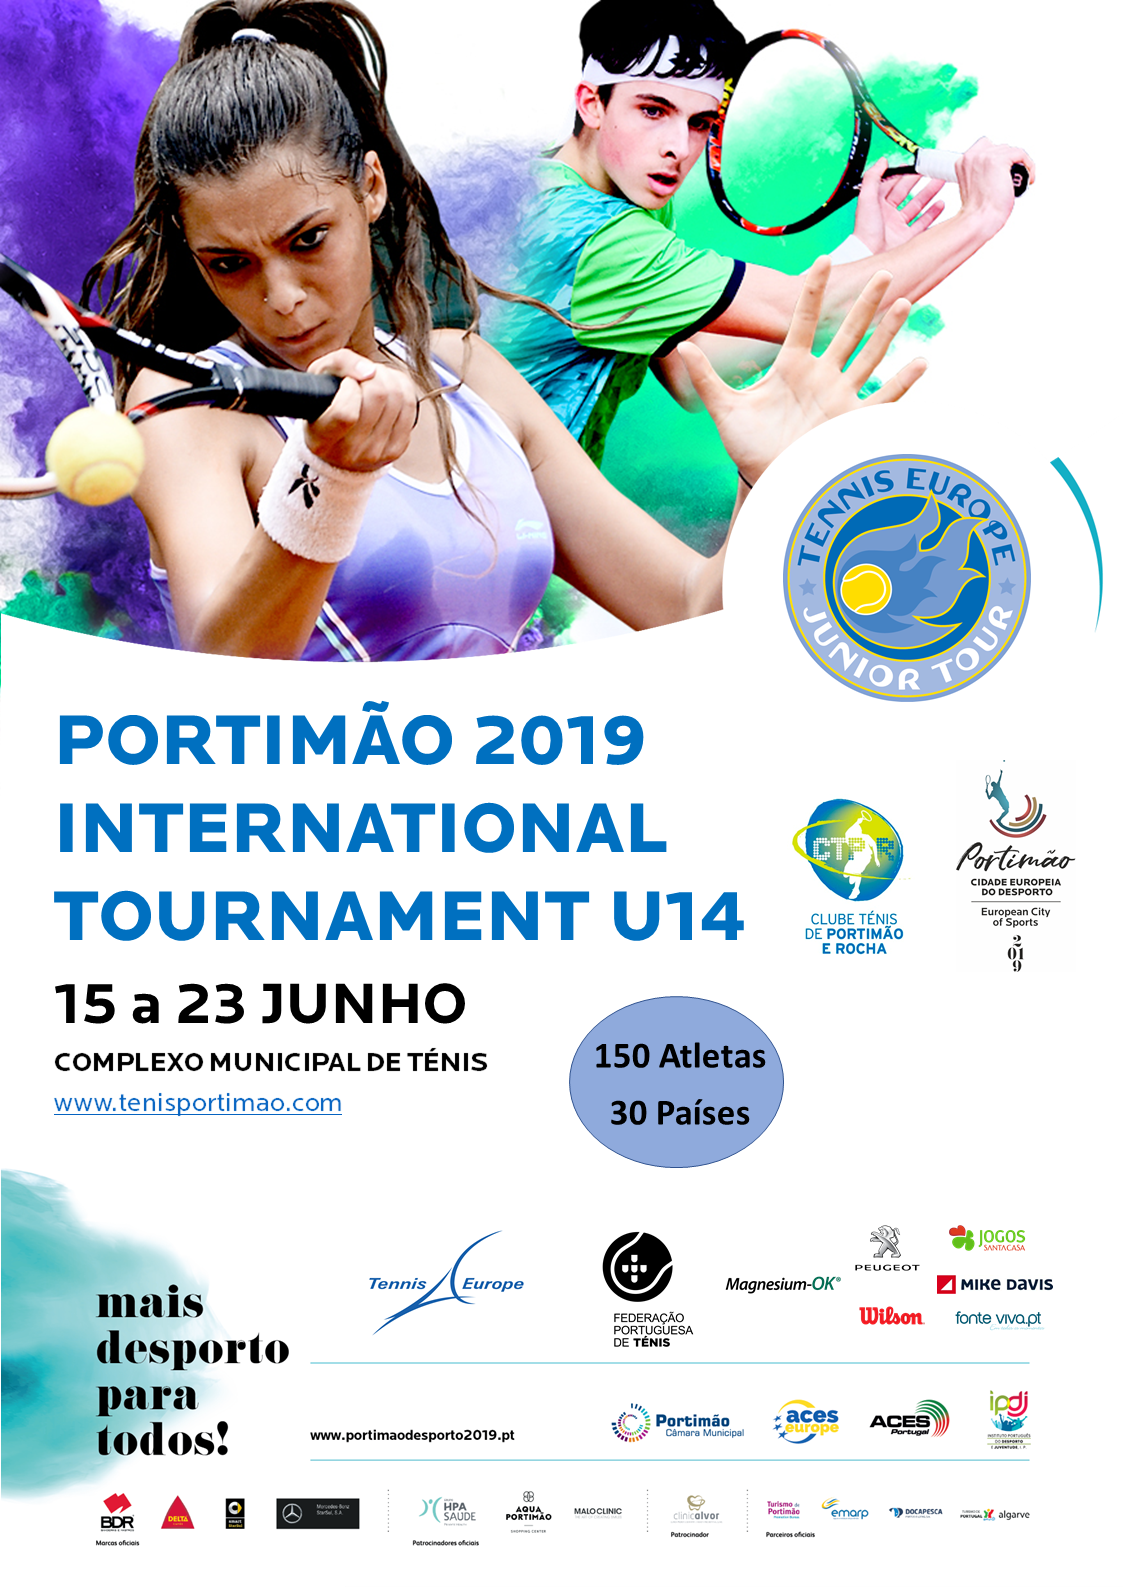 Portimão 2019 International Tournament U14